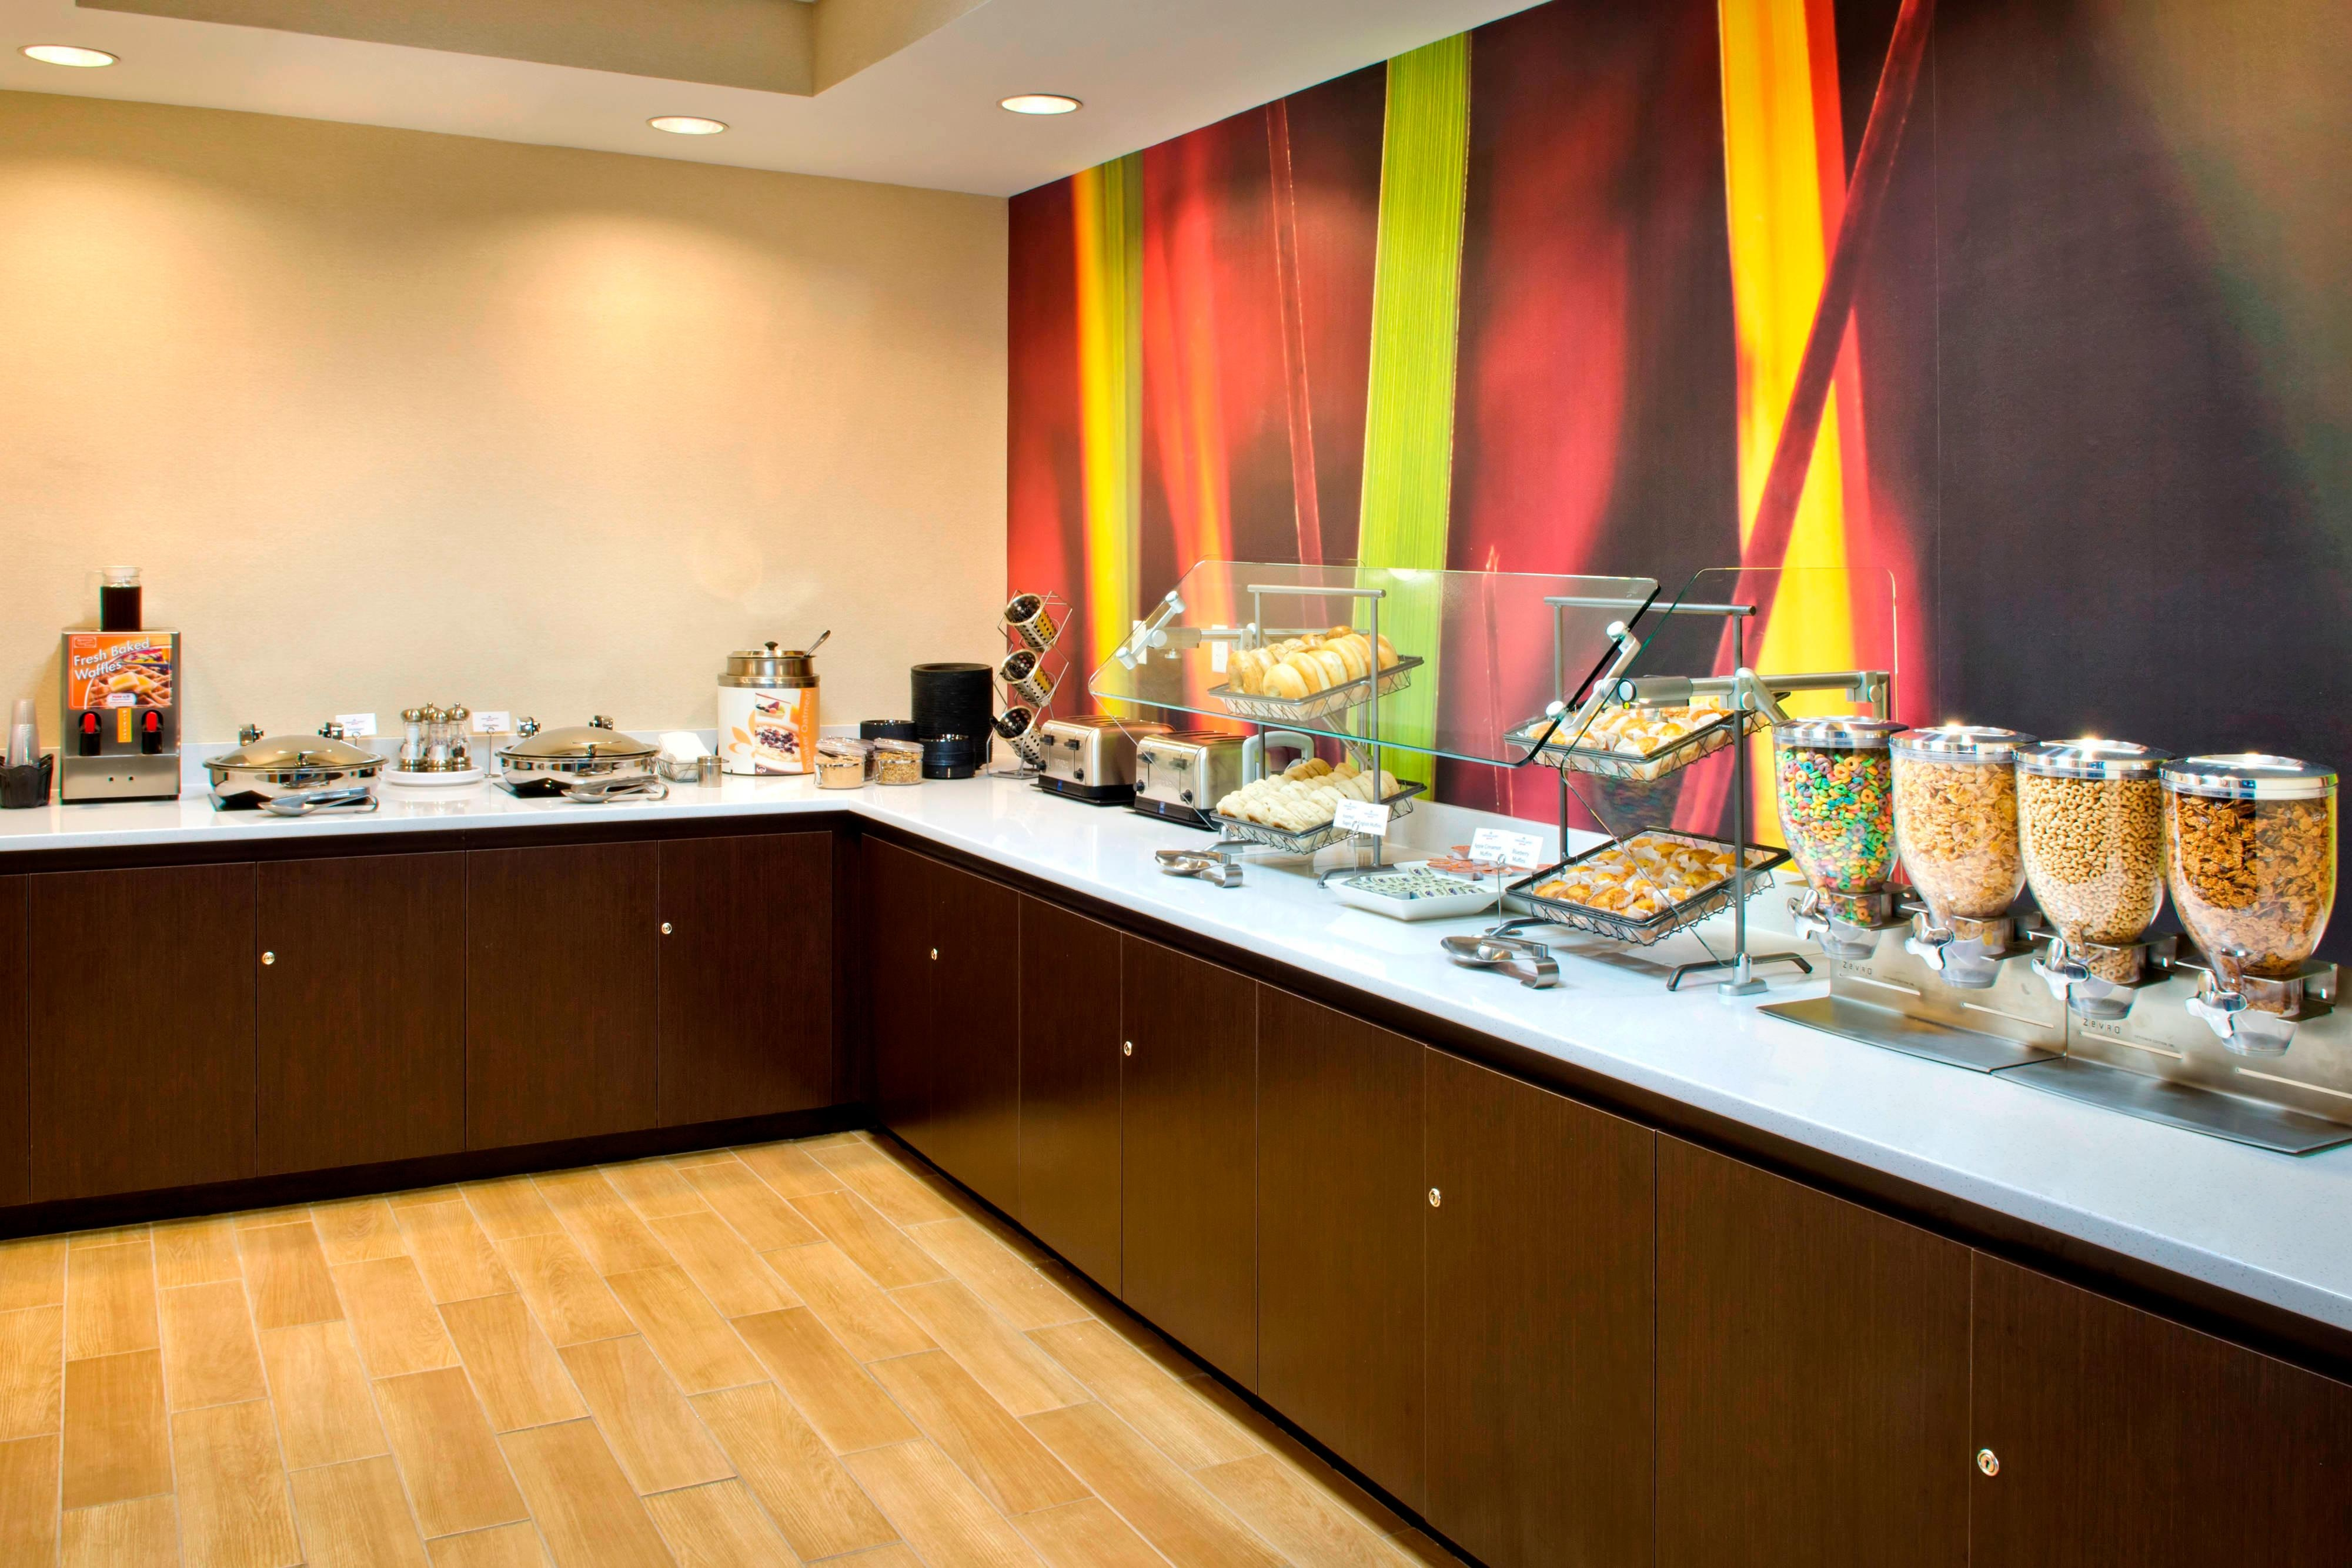 Andover Hotels - Breakfast Area